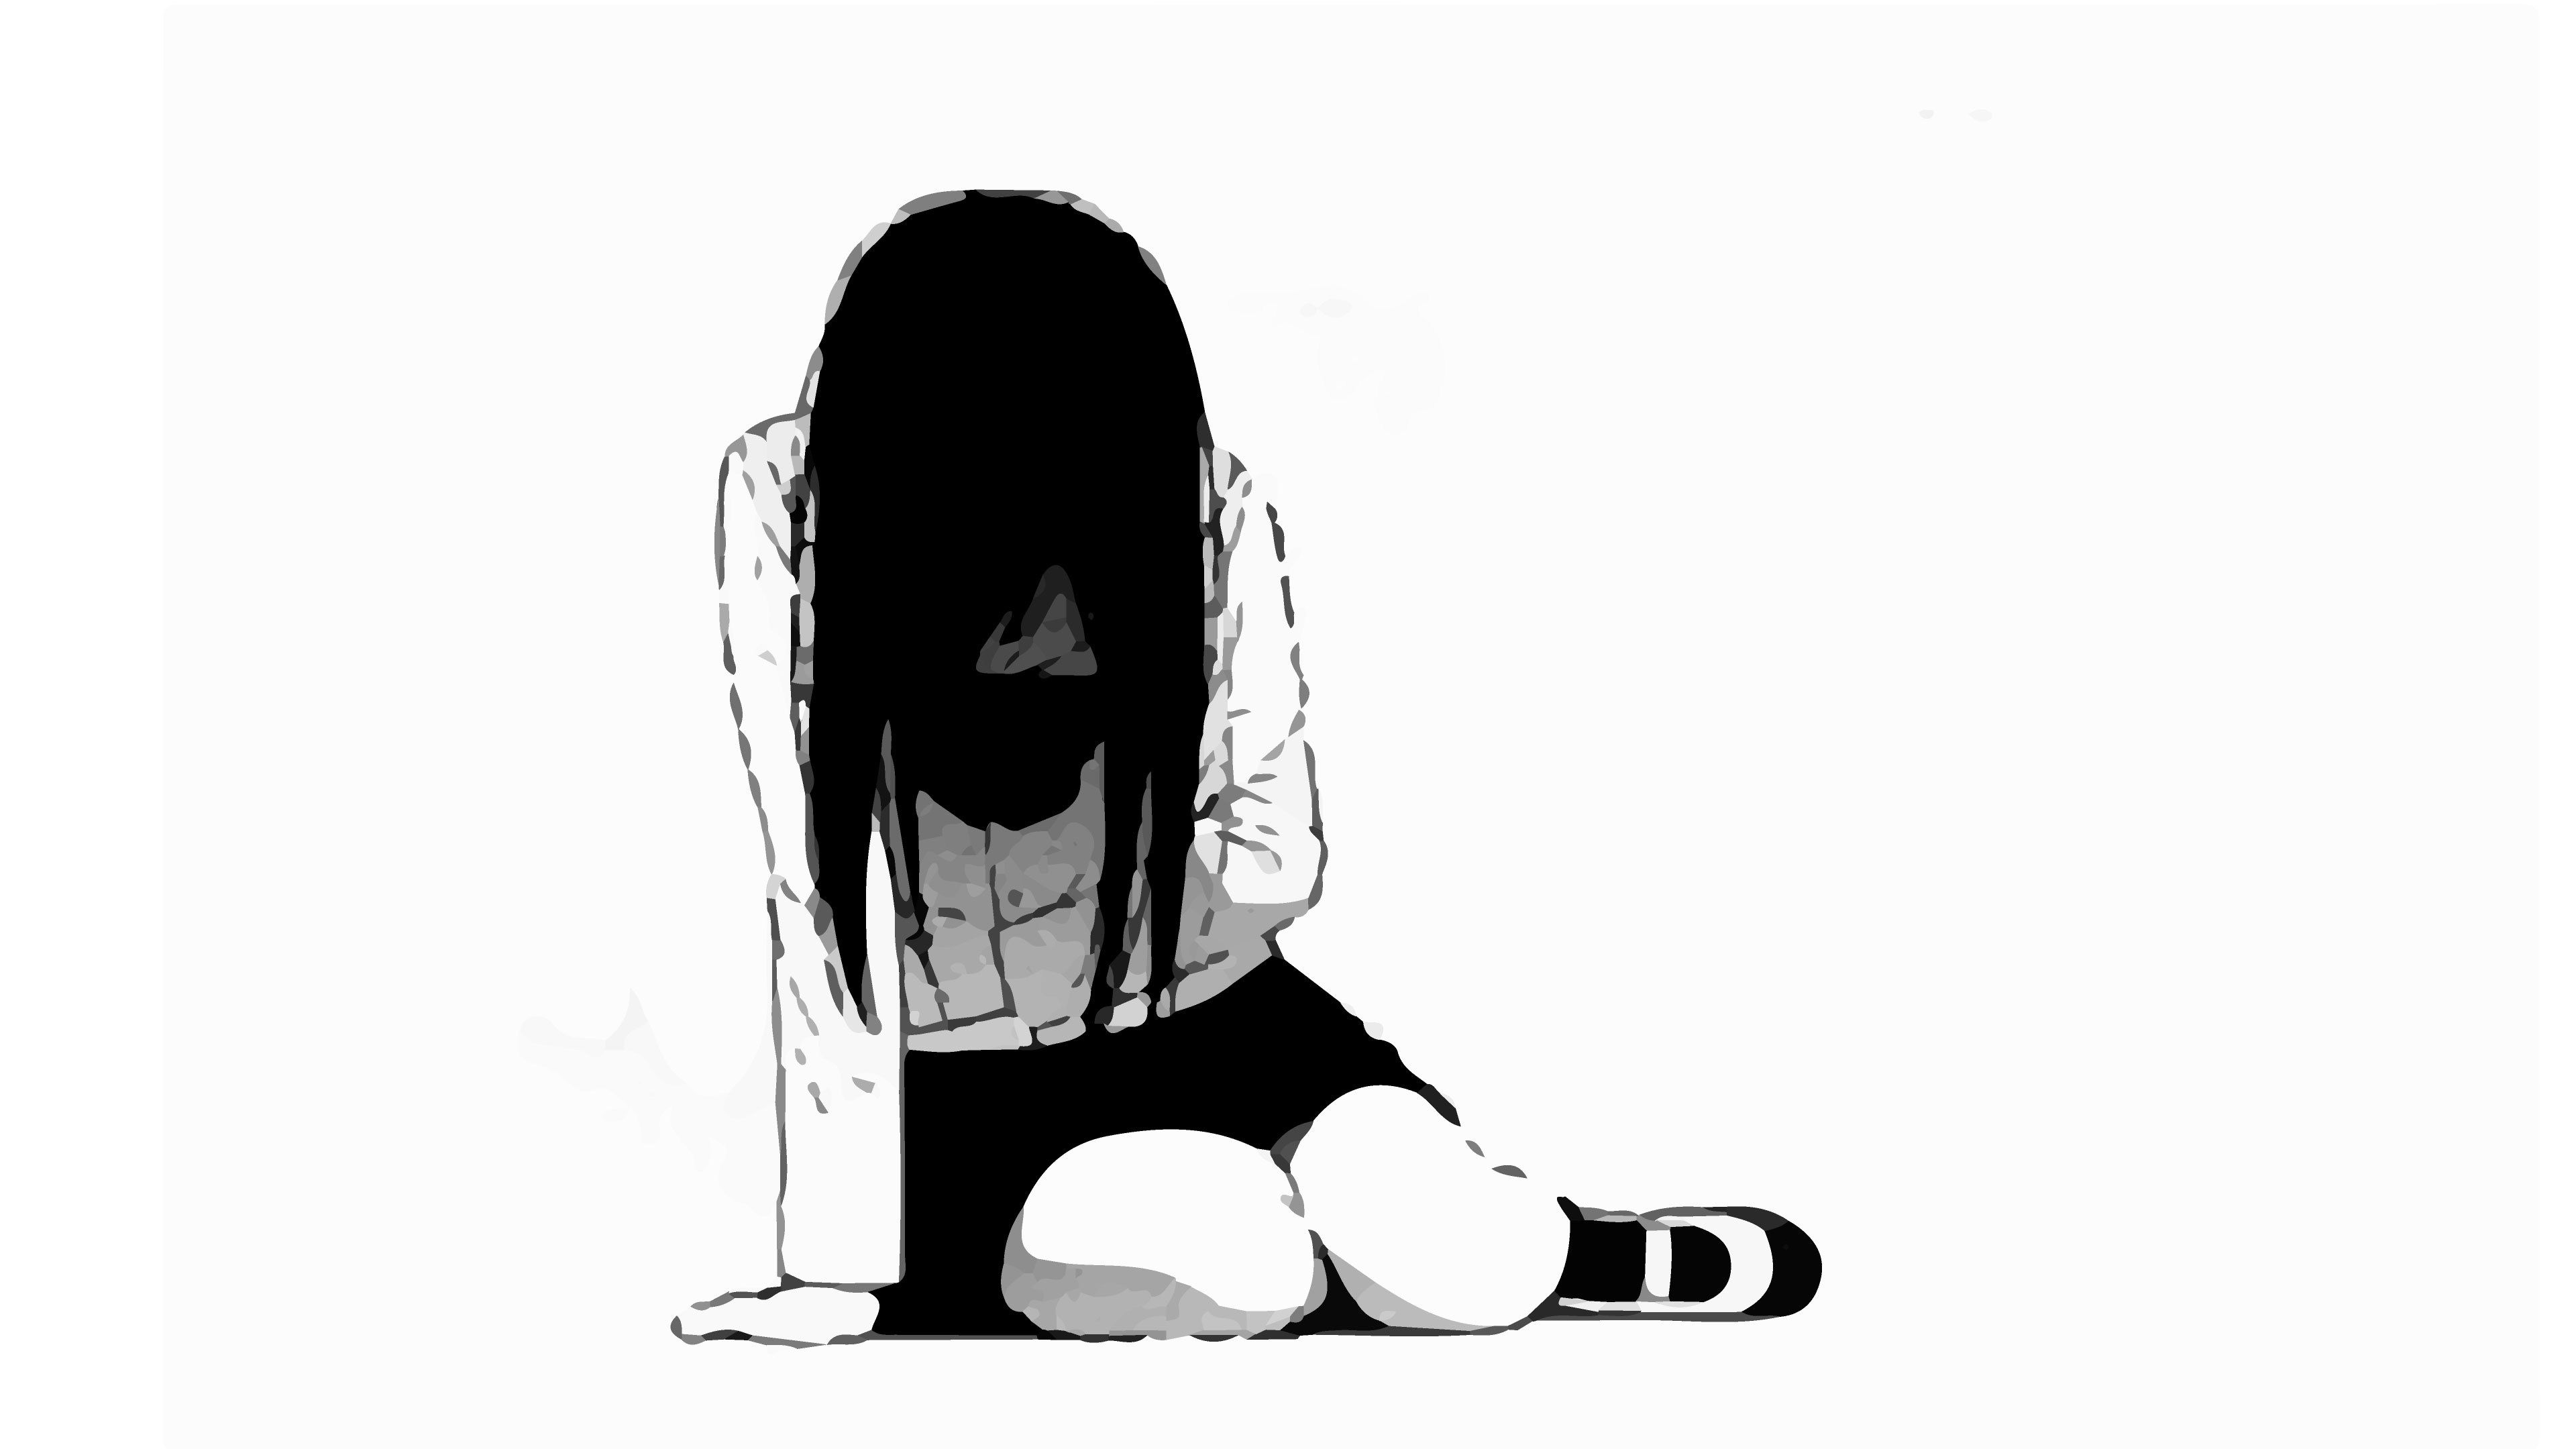 Heartbroken Anime Girl Posted By Ethan Cunningham